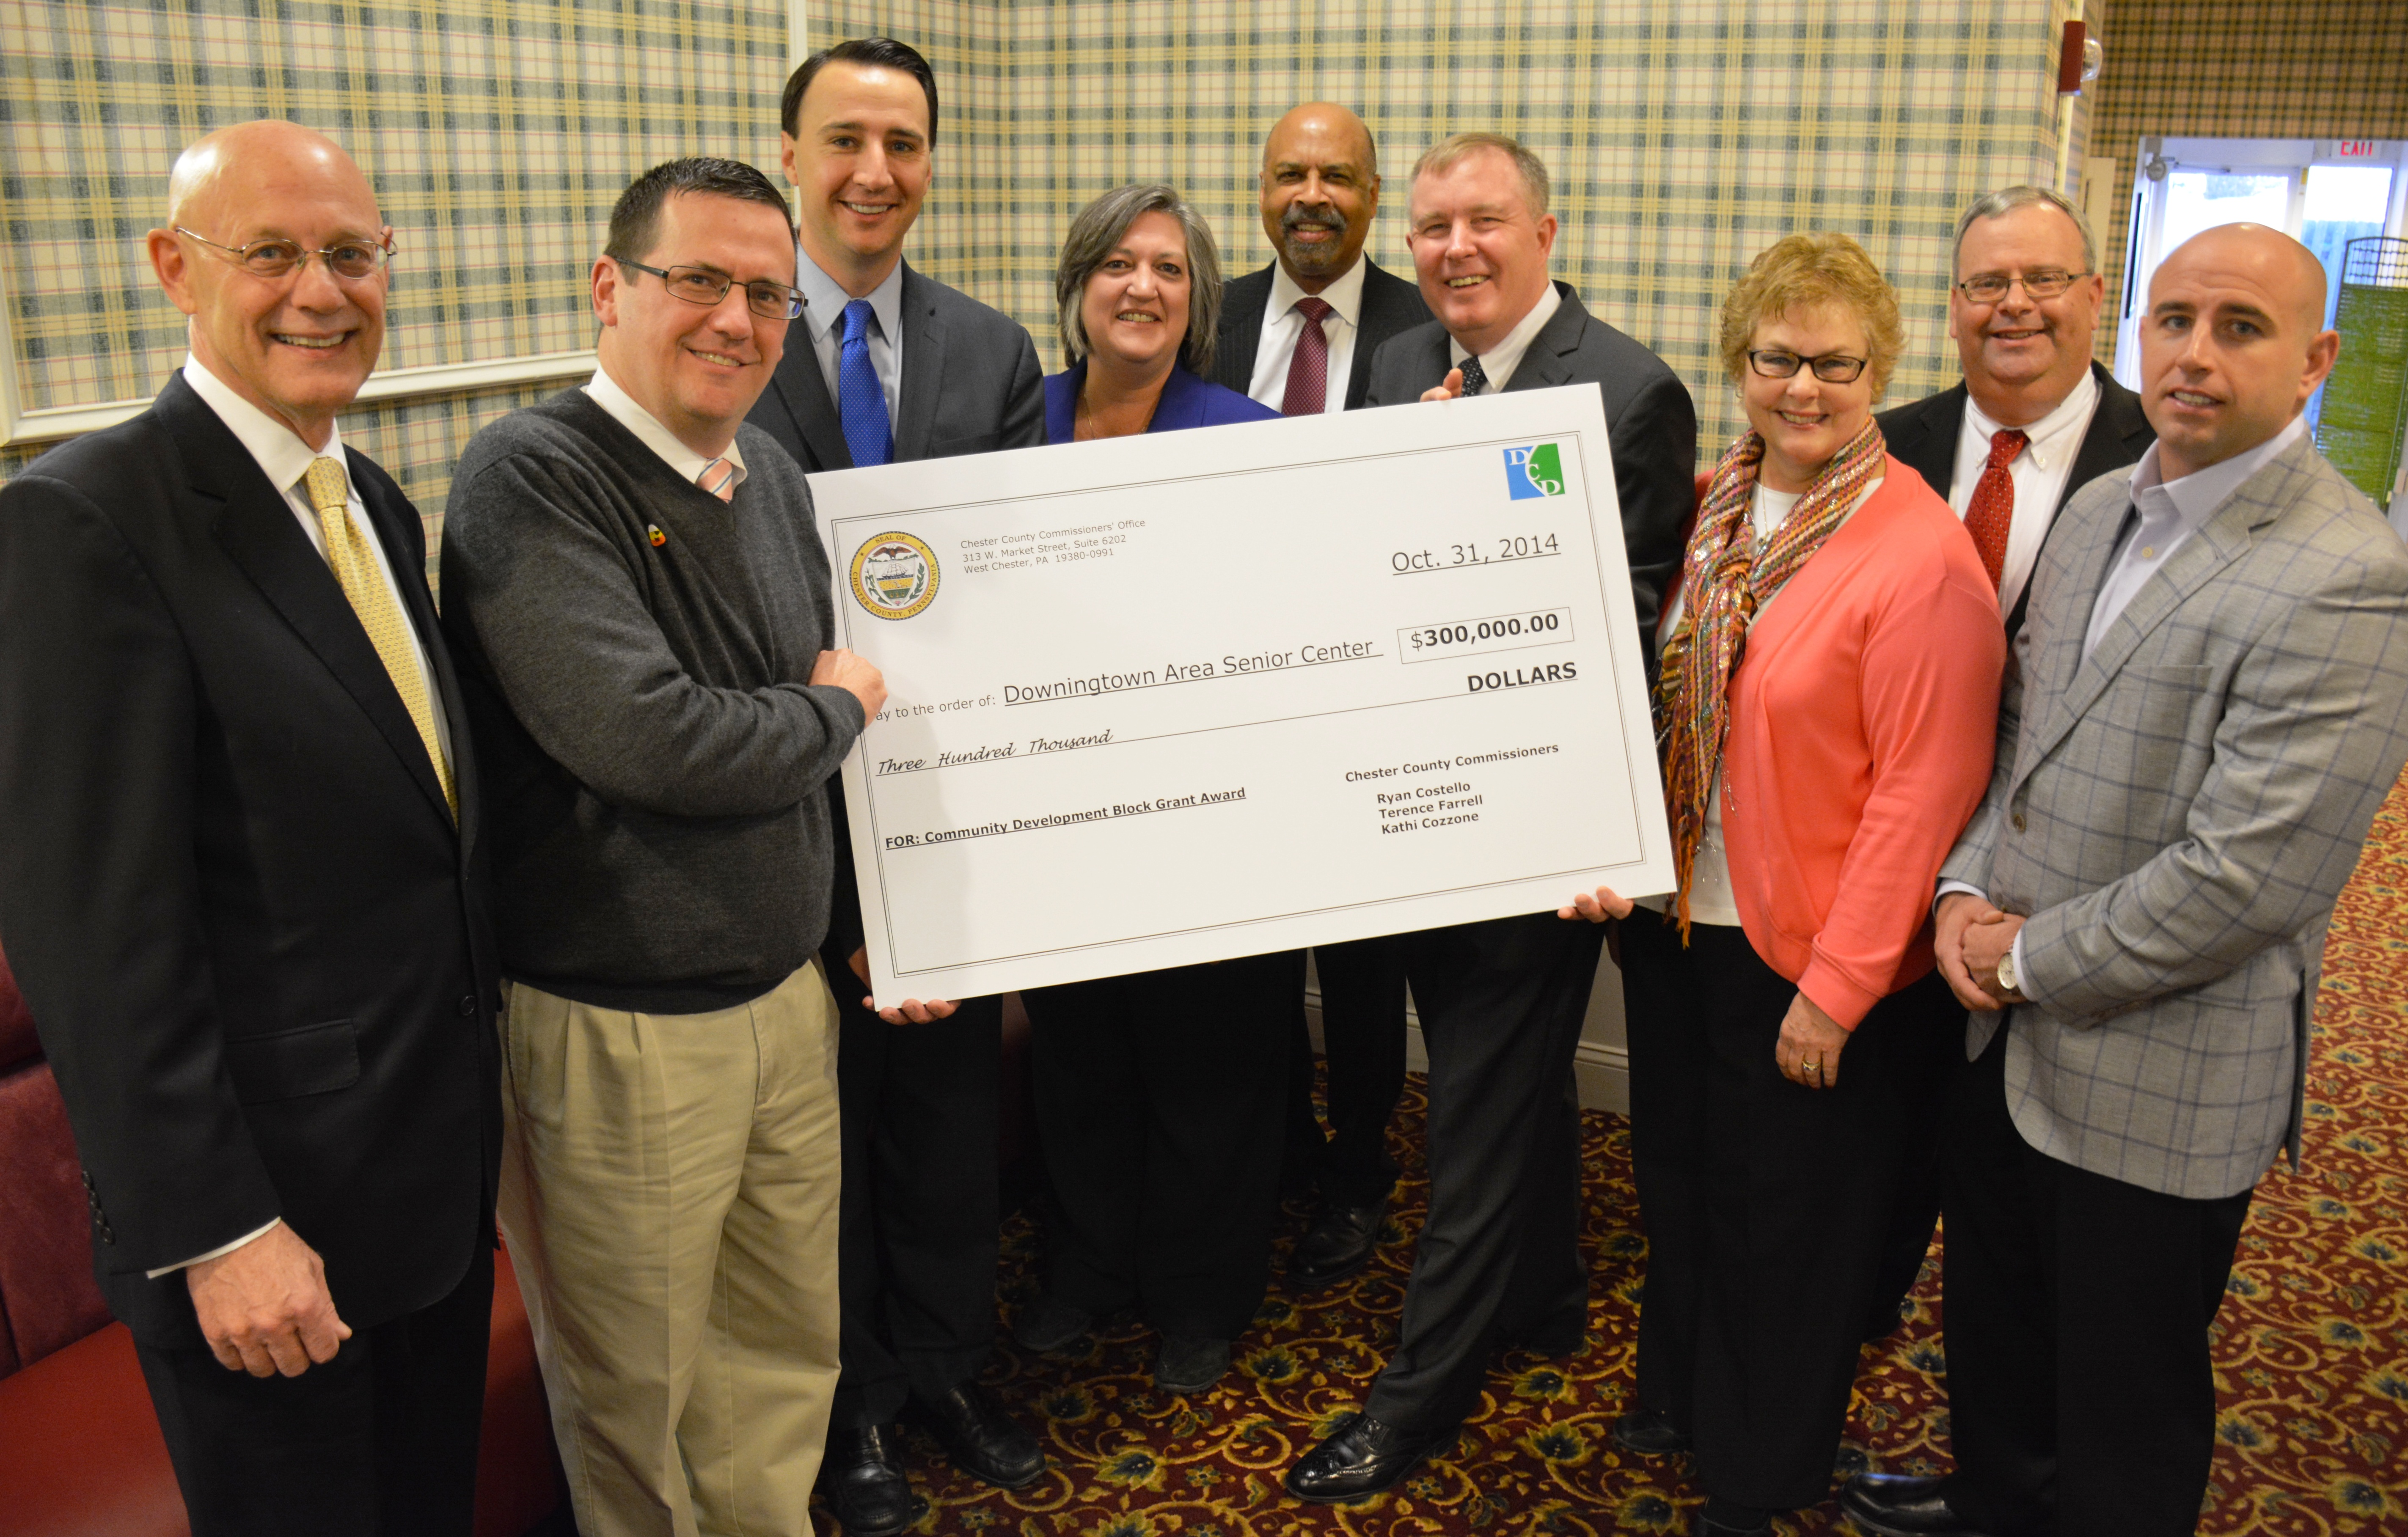 Chester County commissioners present the Downington County Senior Center with a $300,000 check for building upgrades.